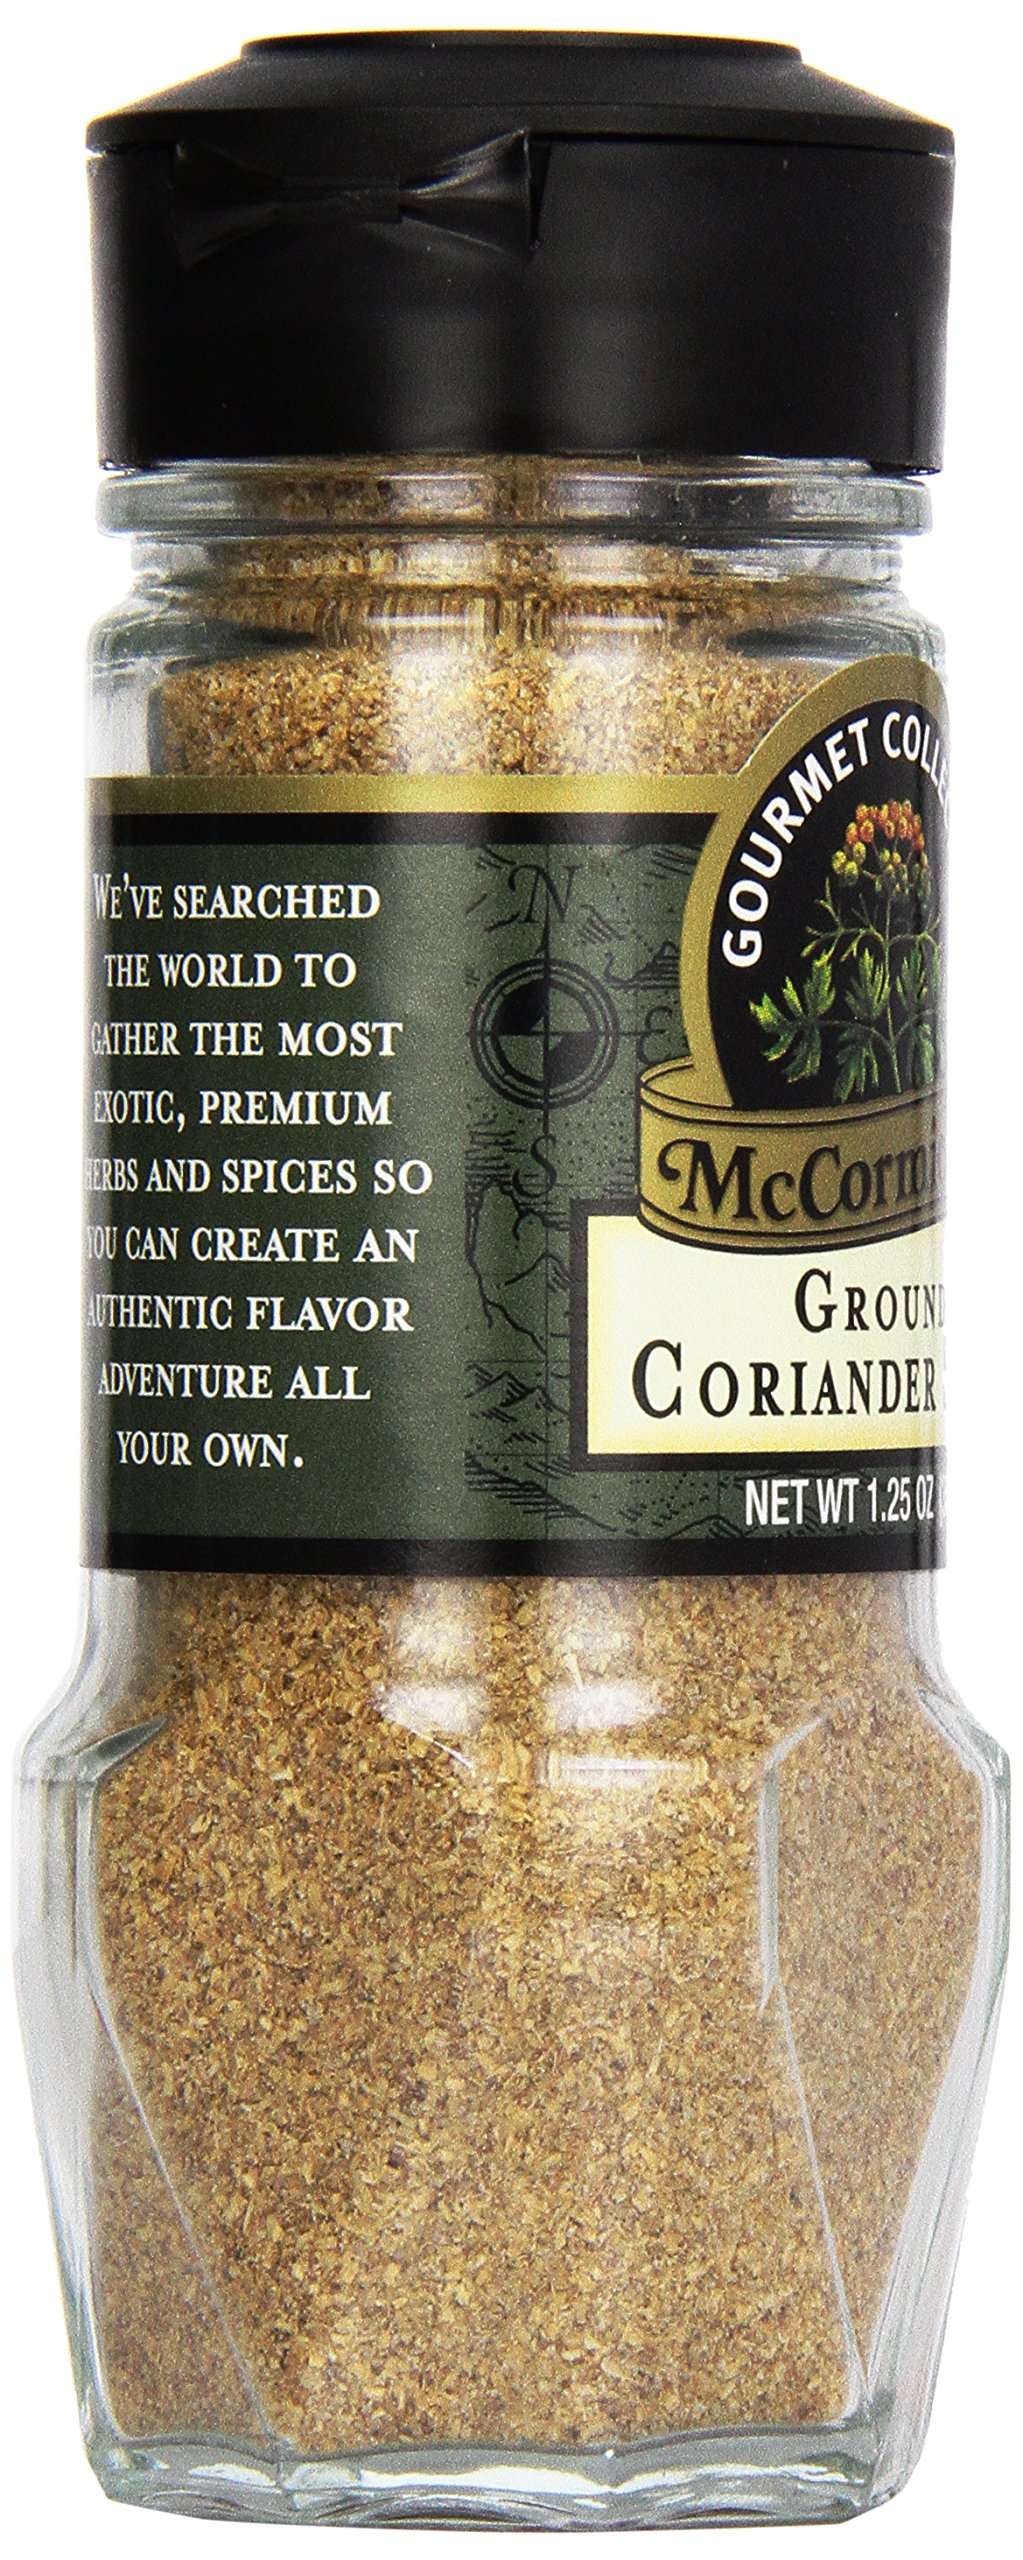 McCormick Gourmet Collection Ground Coriander Seed, 1.25 oz